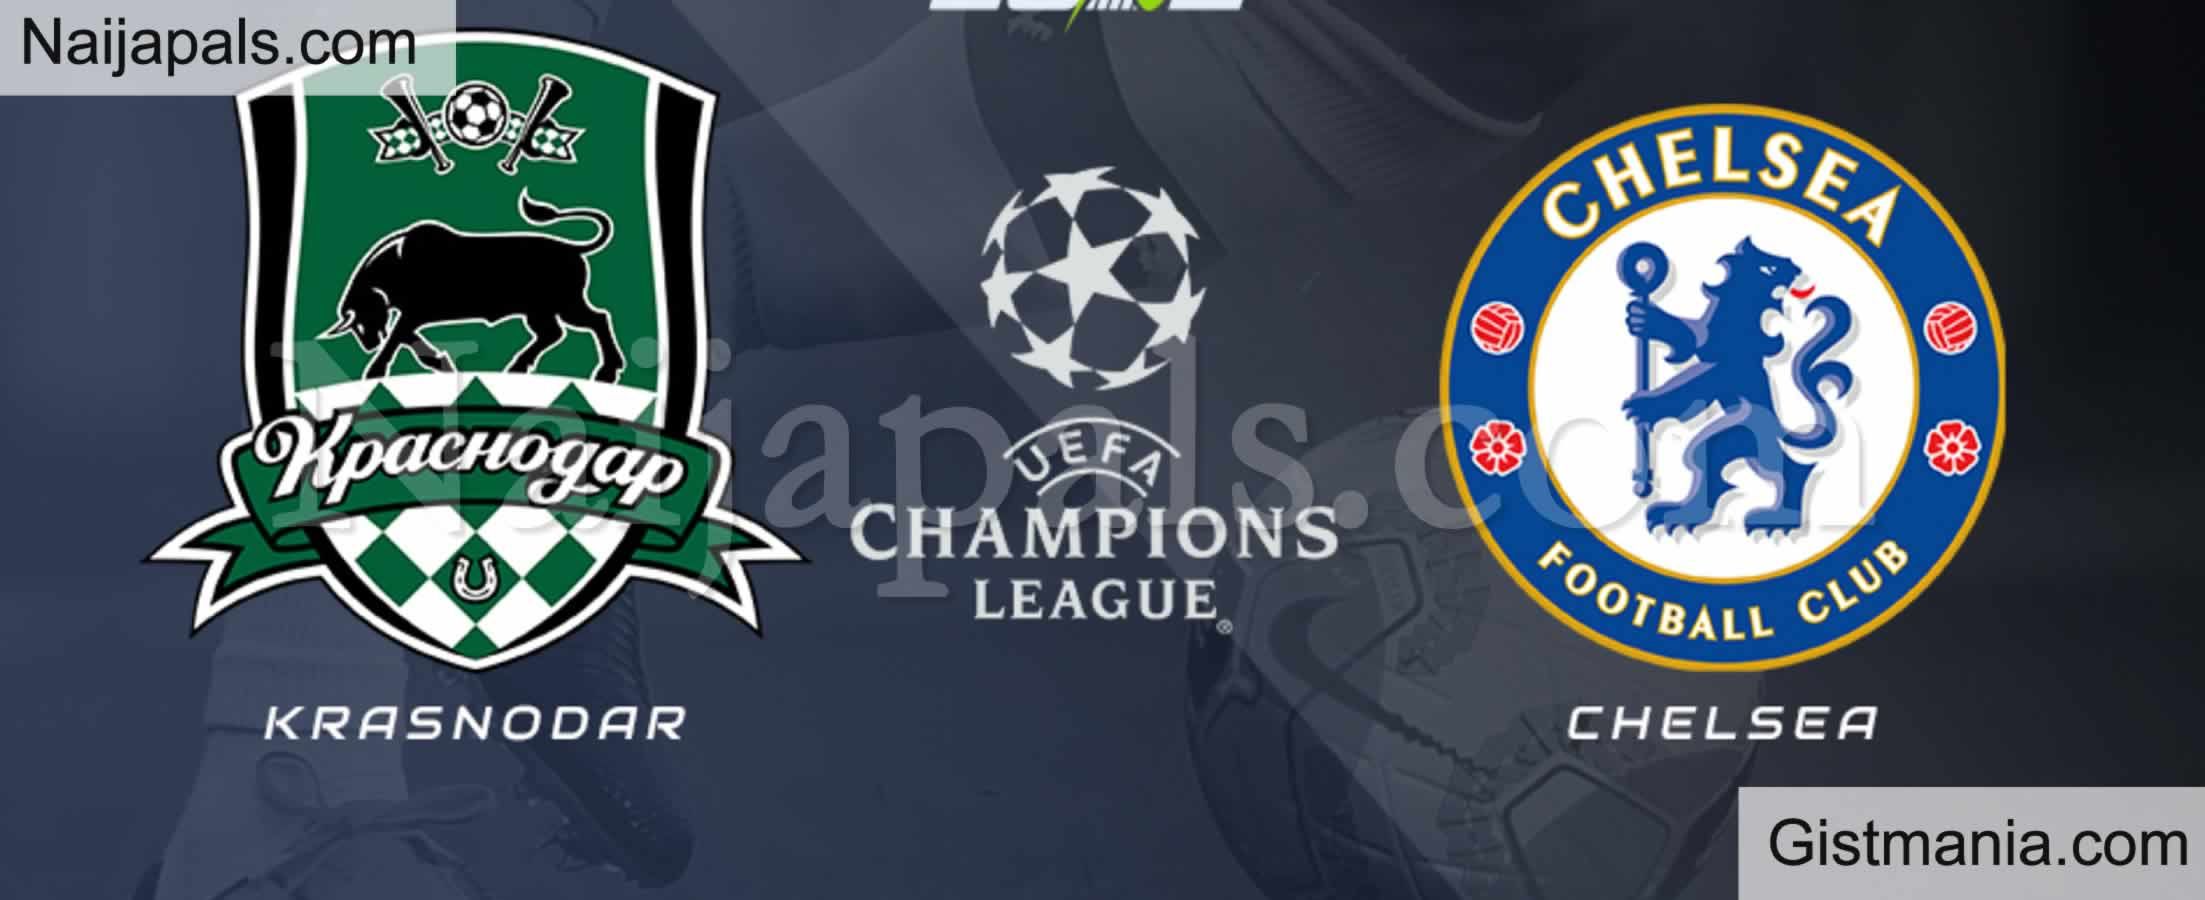 <img alt='.' class='lazyload' data-src='https://img.gistmania.com/emot/soccer.gif' /> <b>FC Krasnodar v Chelsea : UEFA Champions League Match, Team News, Goal Scorers and Stats</b>